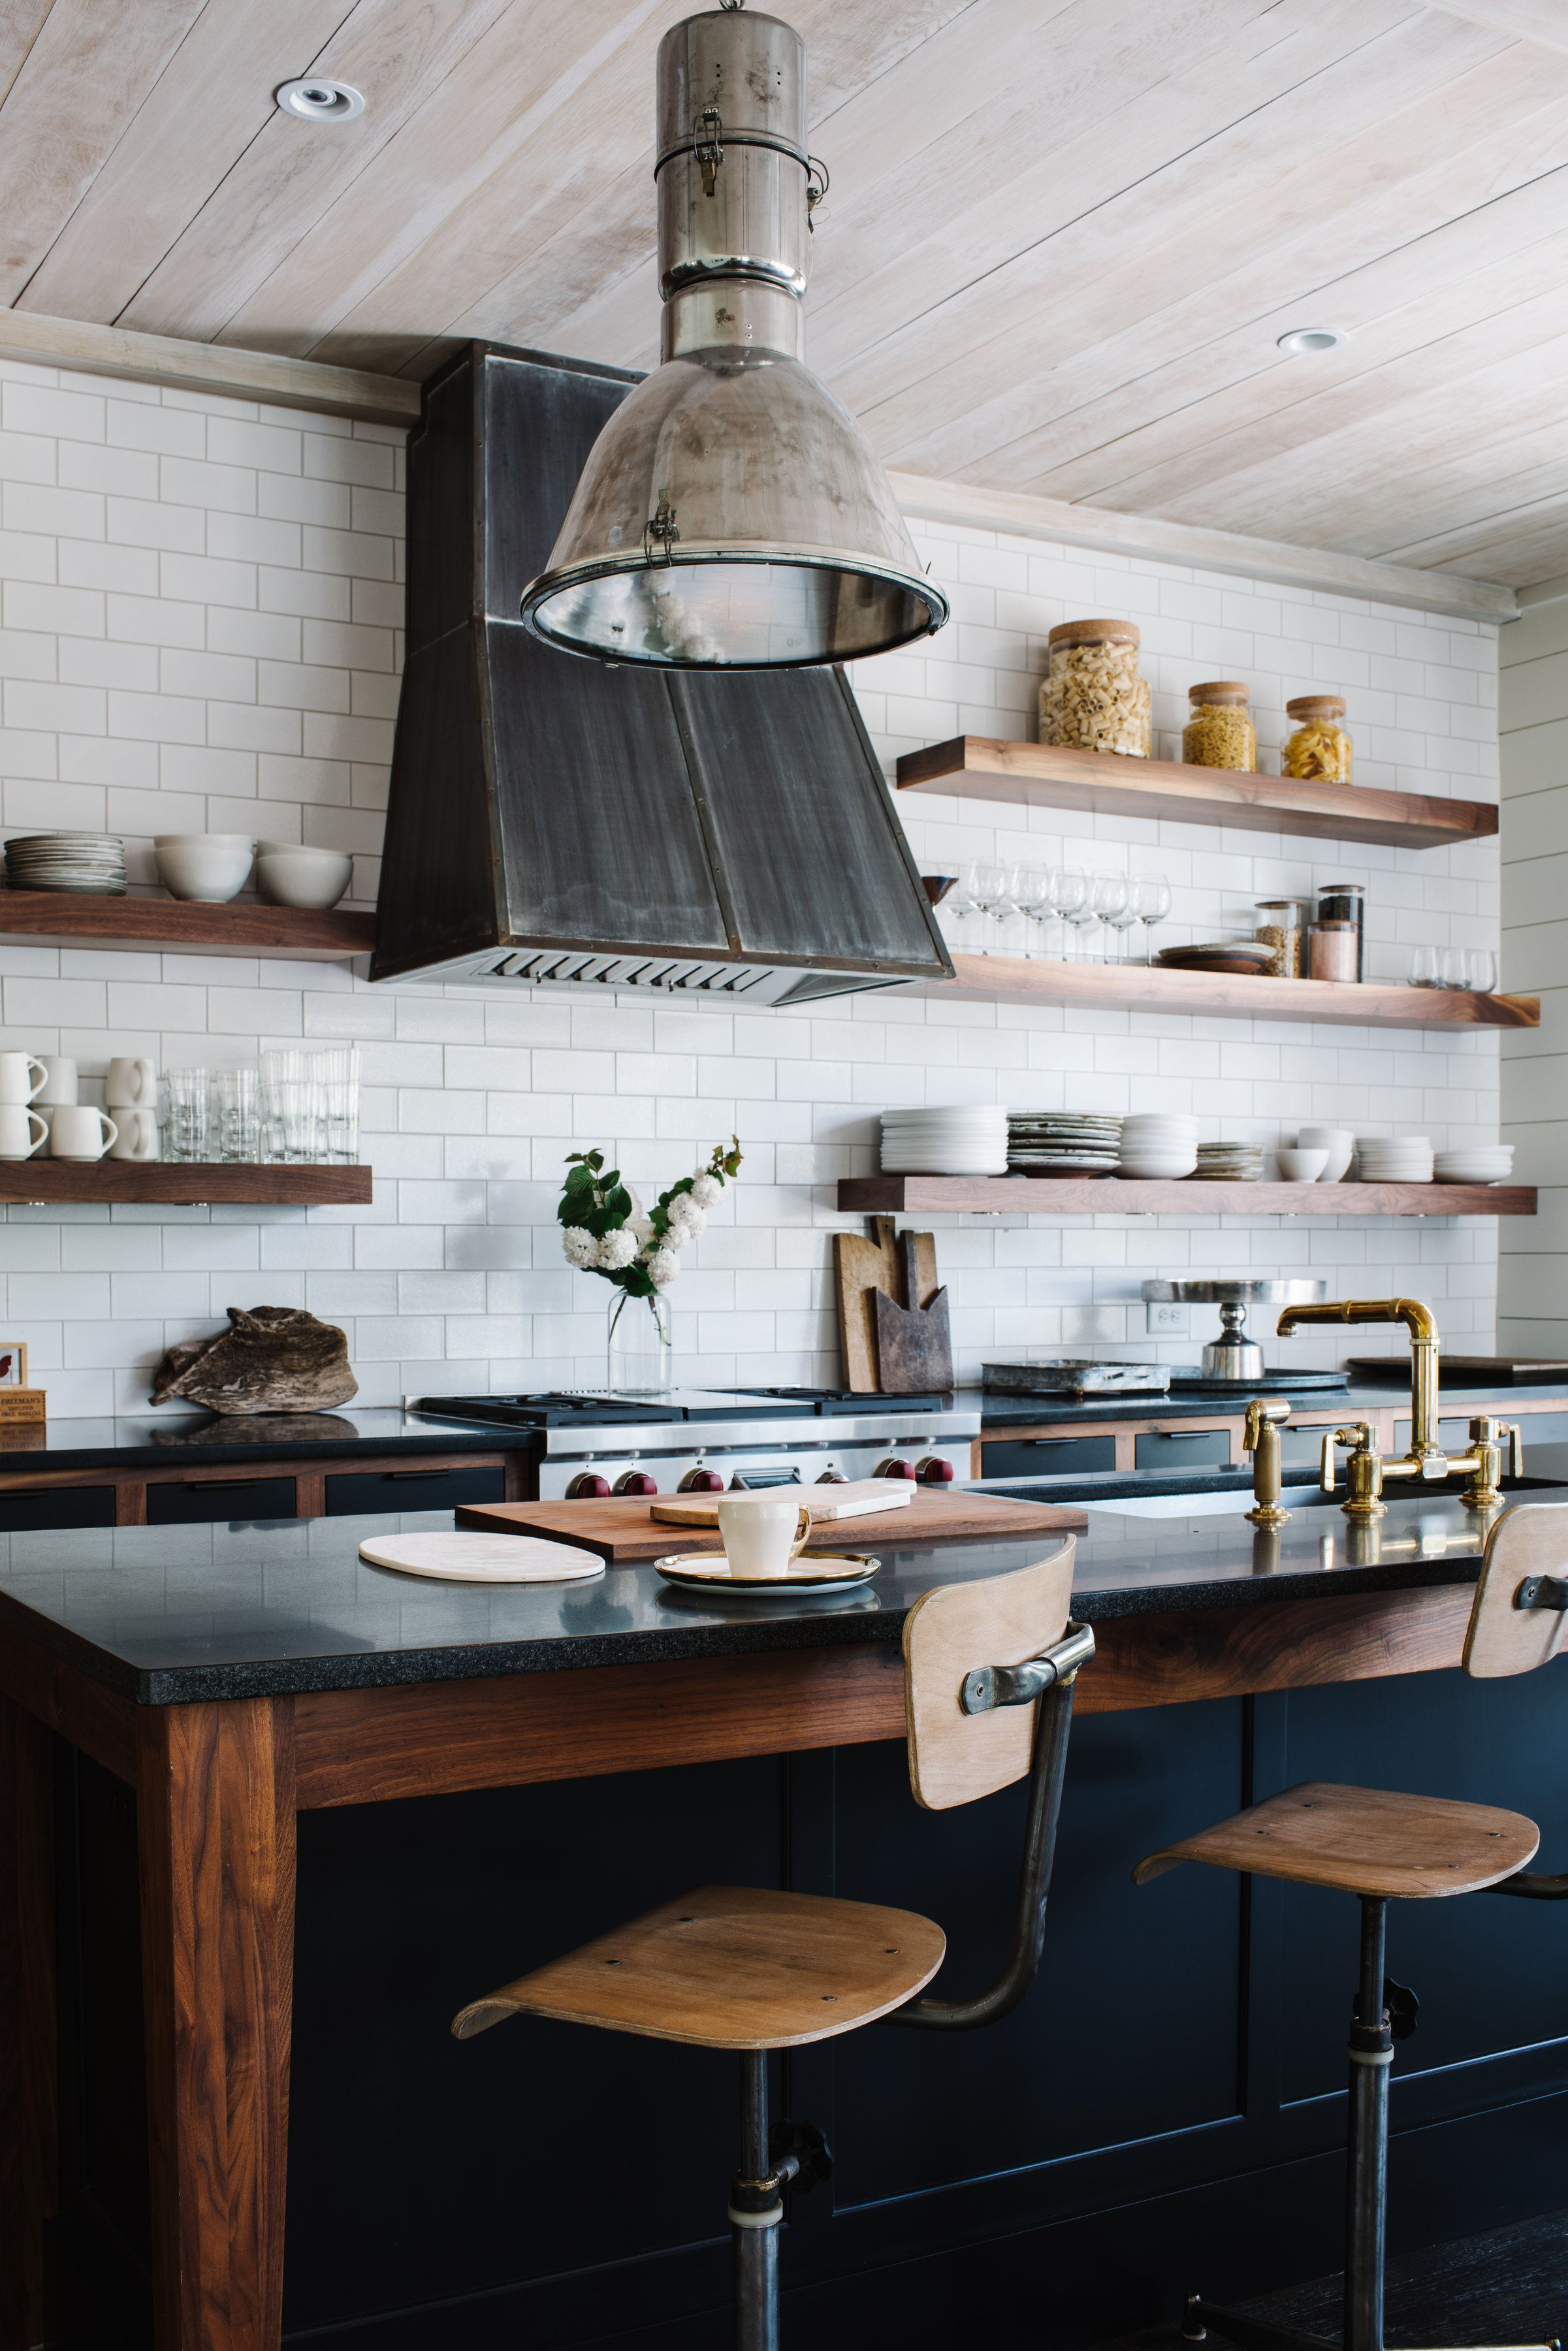 rustic industrial kitchen design smith hanes studio kitchen rustic industrial kitchen design smith hanes studio